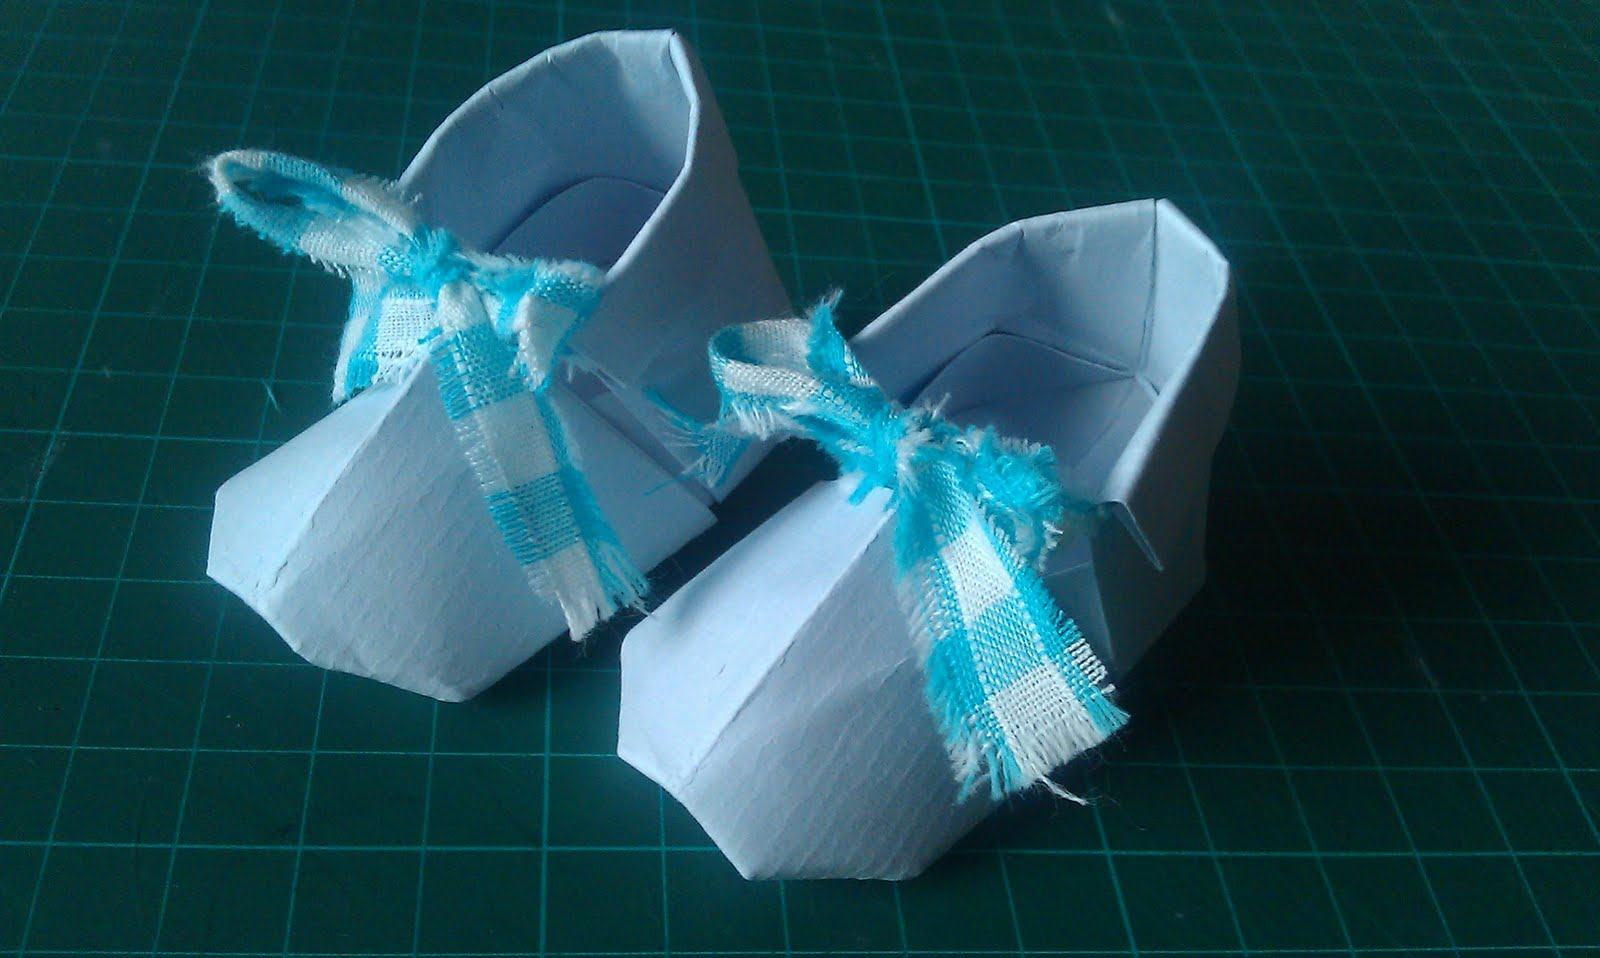 Todays Blog Post Is A Tutorial On How To Make These Origami Baby Booties They Are The Most Adorable Little Things Suitable For All Manner Of Related